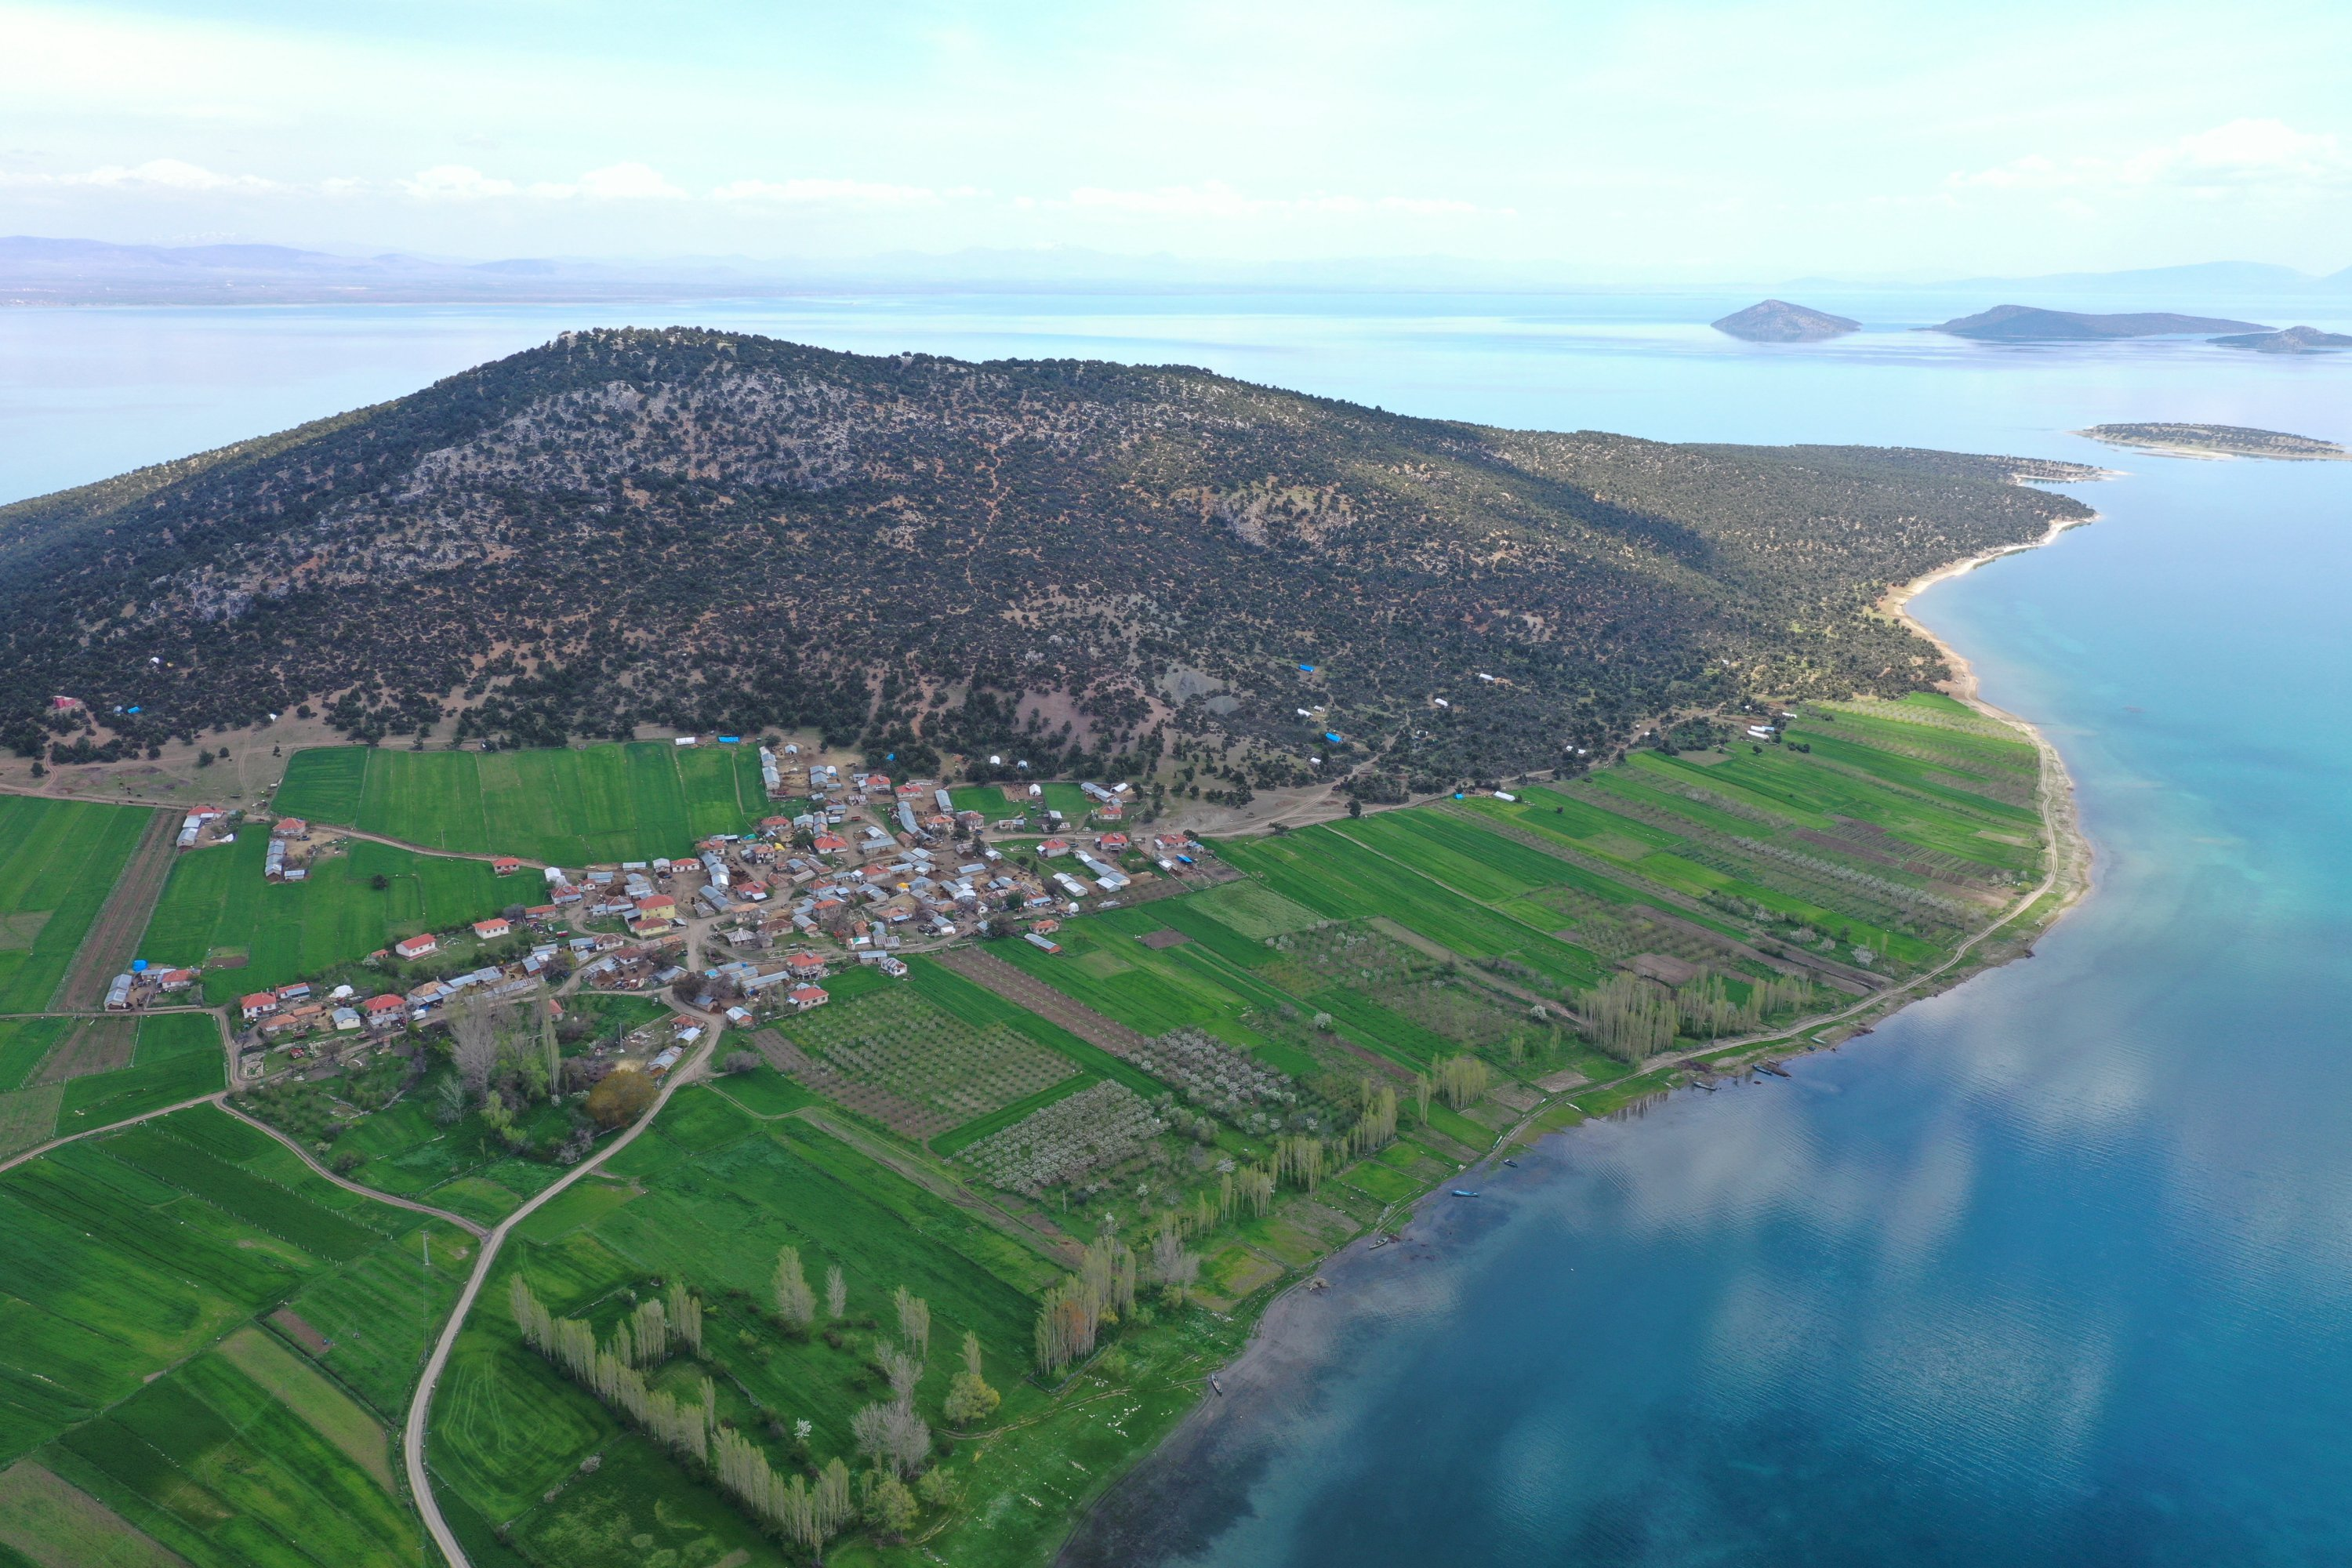 Mada island is the only lake island with settlers in Turkey. (AA Photo)